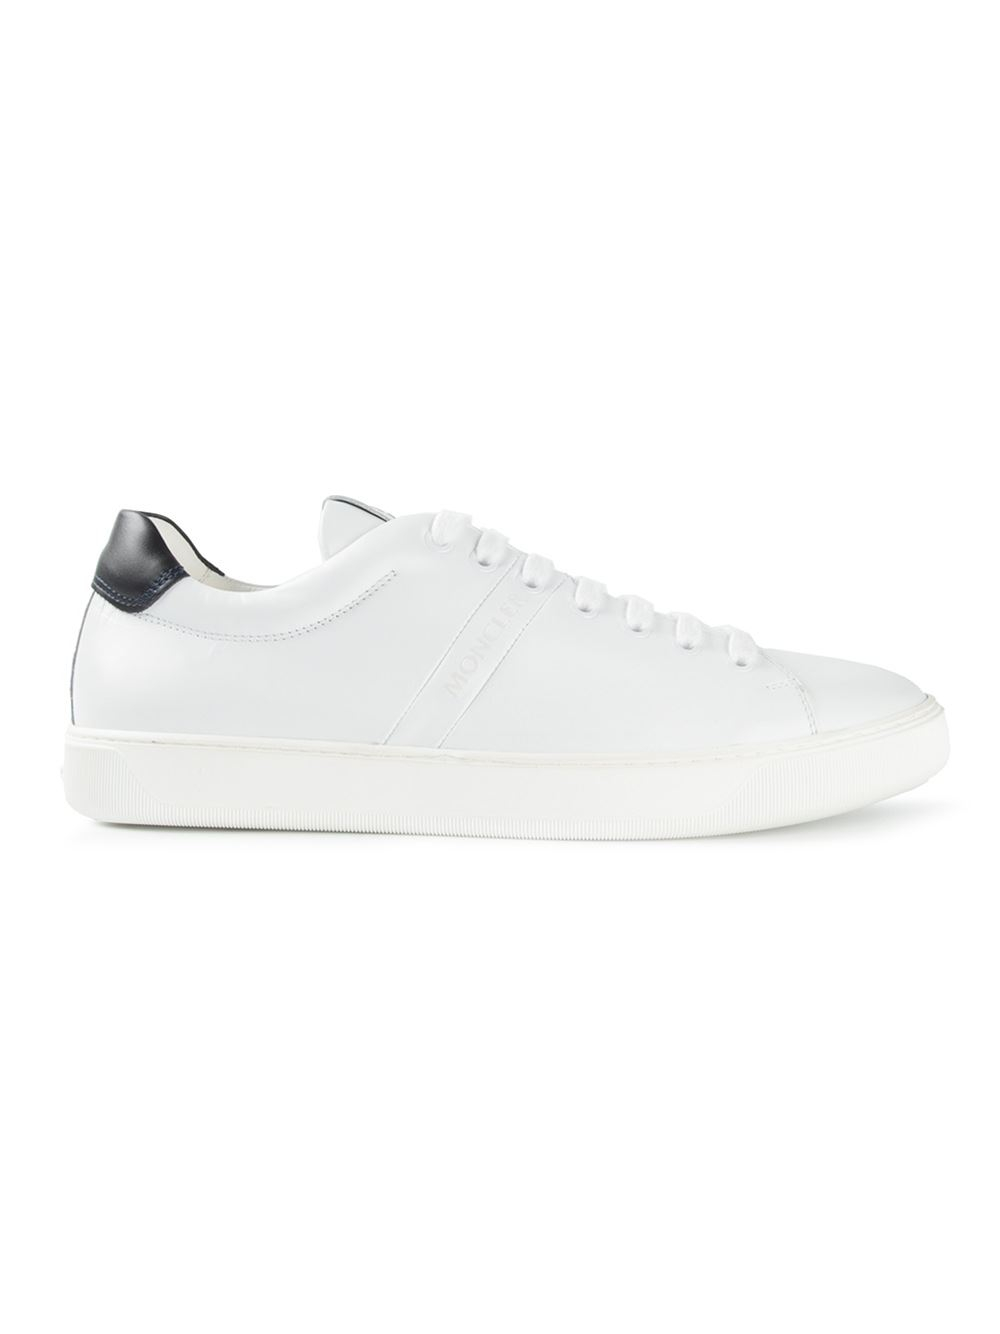 Moncler Vincent Leather Sneakers in